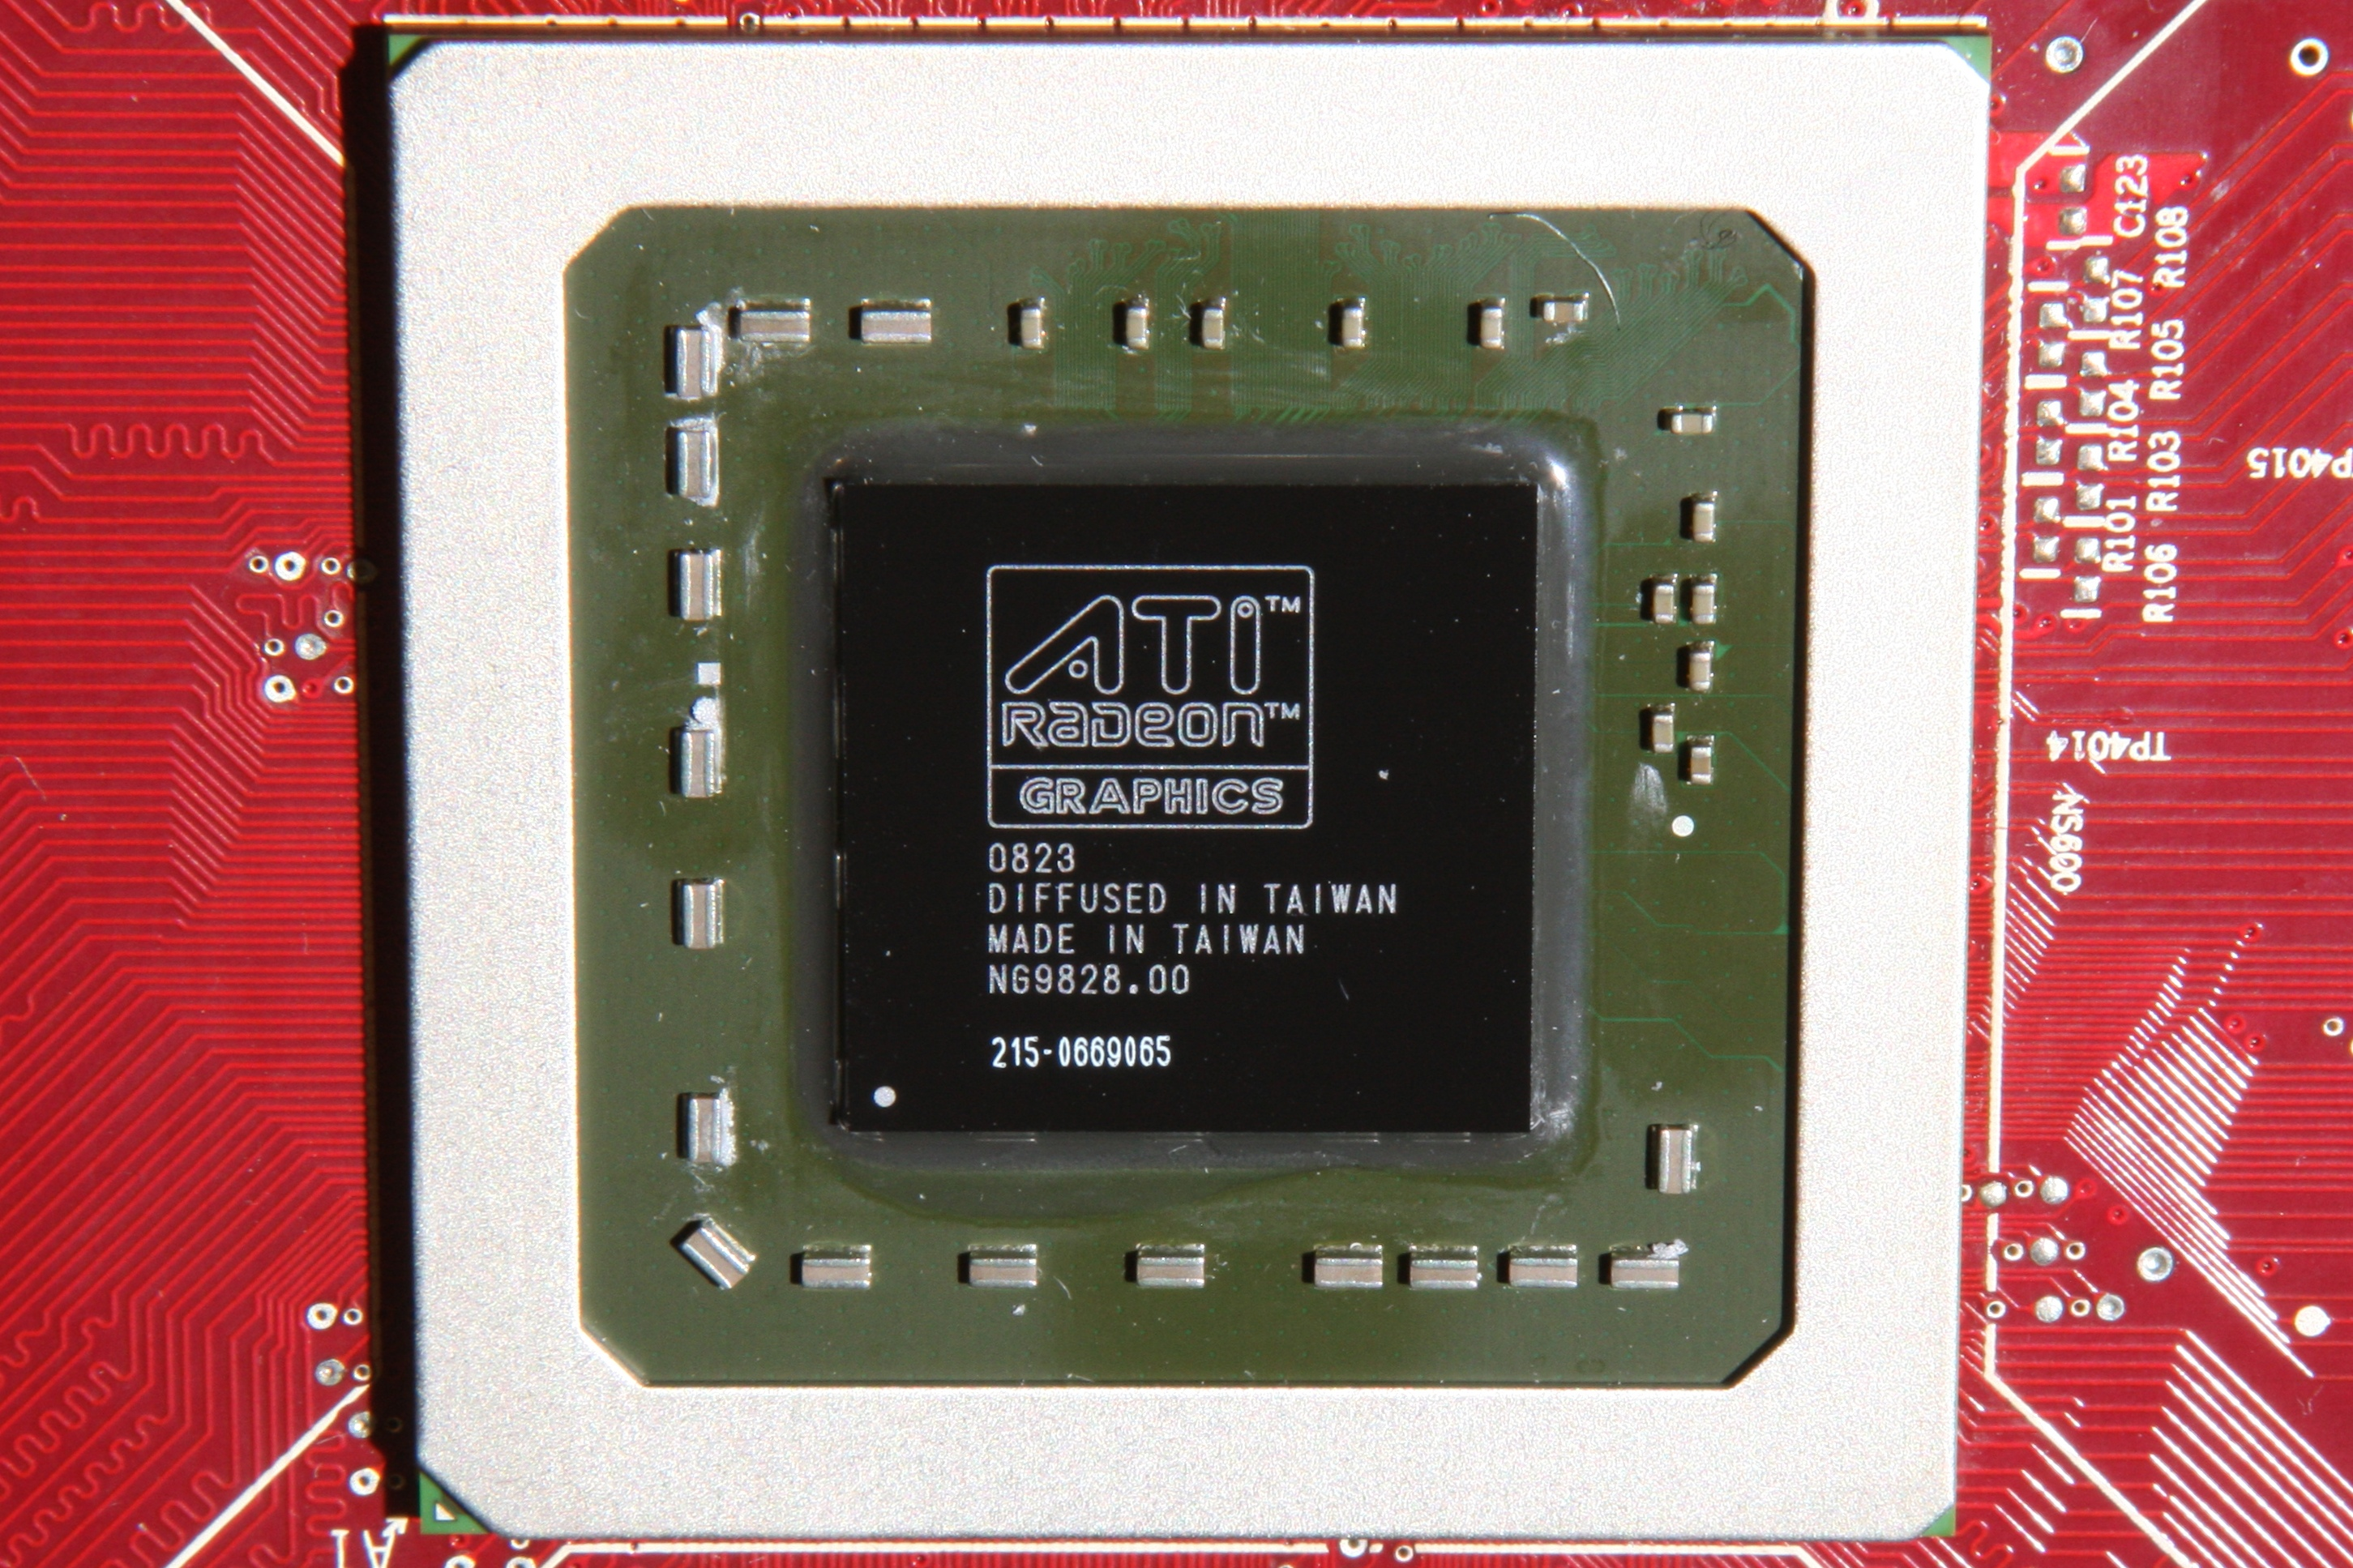 ATI 3DP MOBILITY RADEON IGP 7000 DRIVER FOR WINDOWS